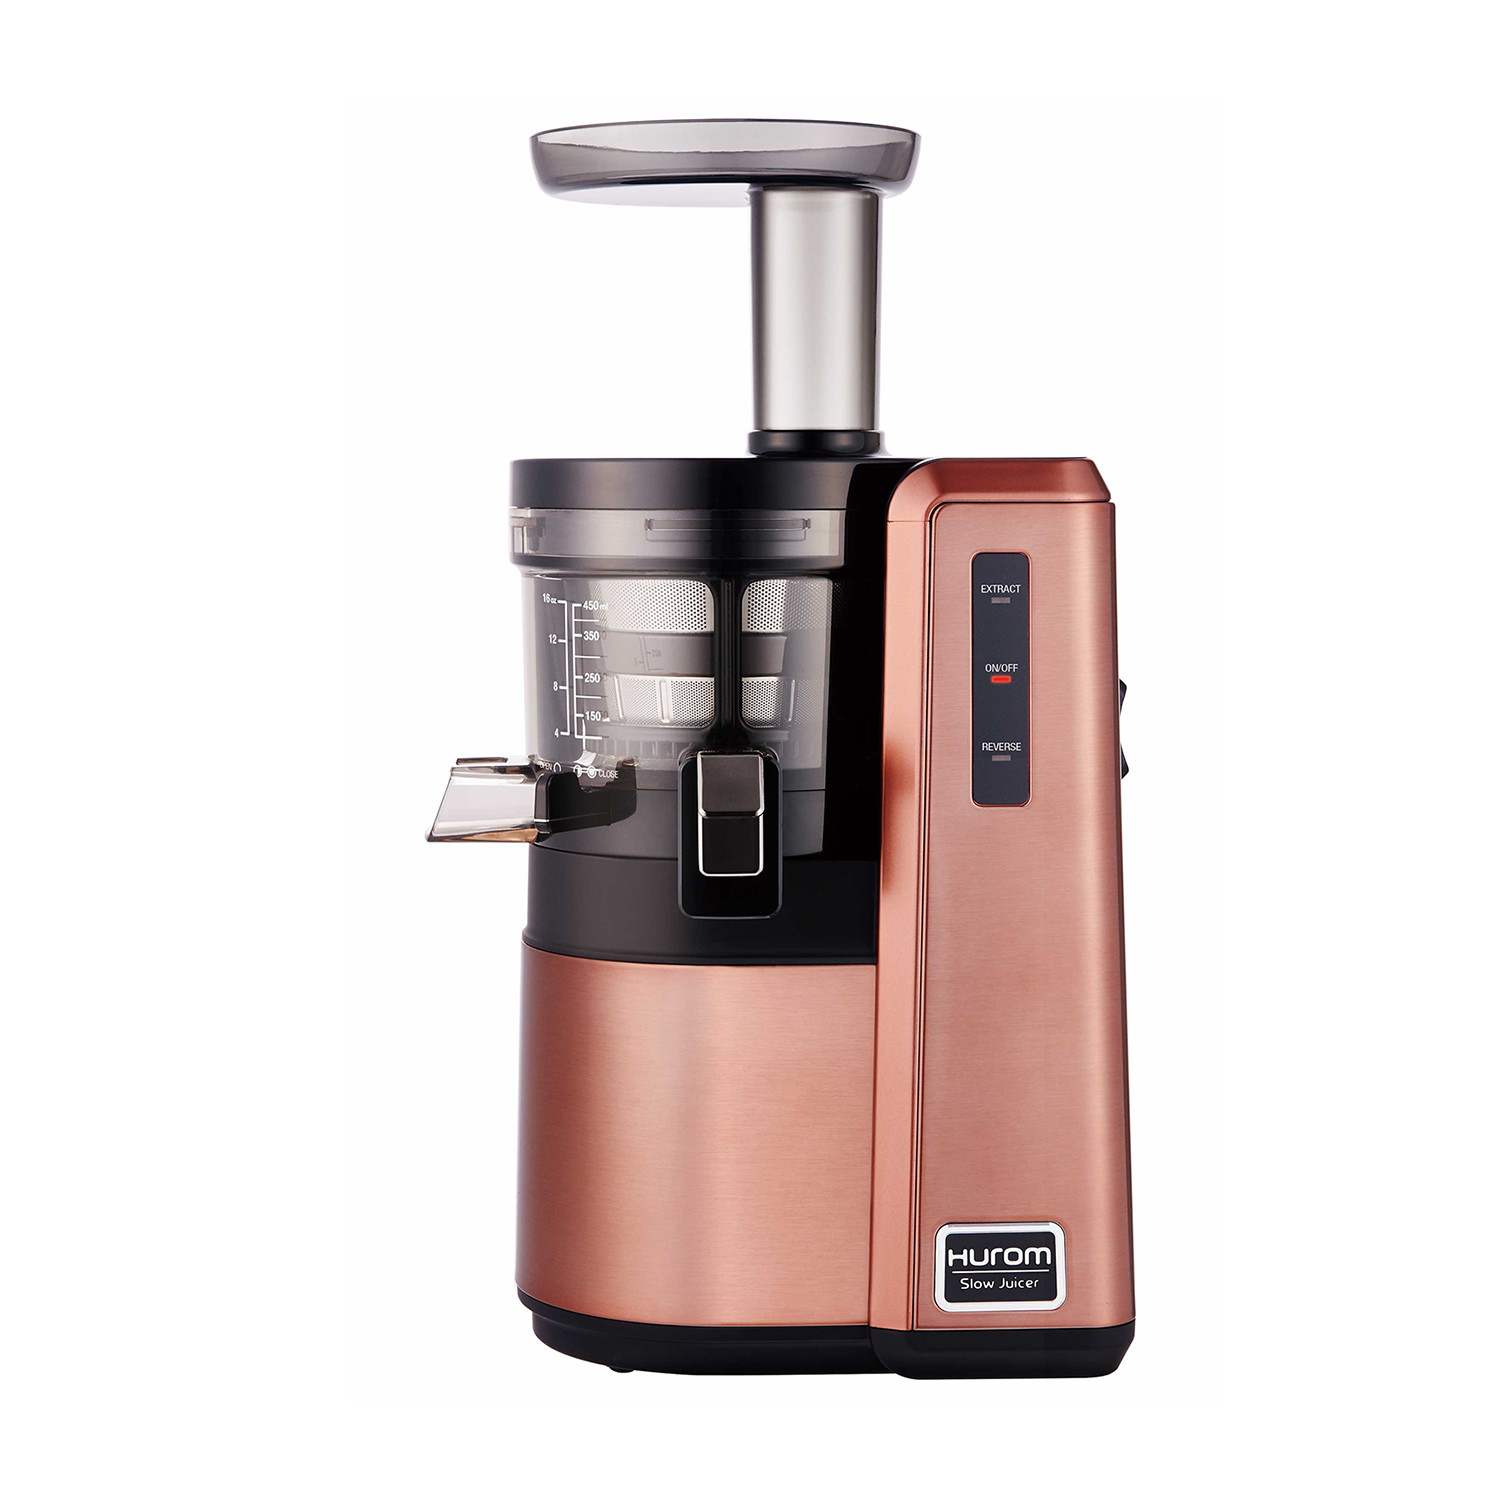 Hurom Slow Juicer Coconut Milk : Hurom HZ Slow Juicer + Juice Jar (Silver) - Hurom - Touch of Modern